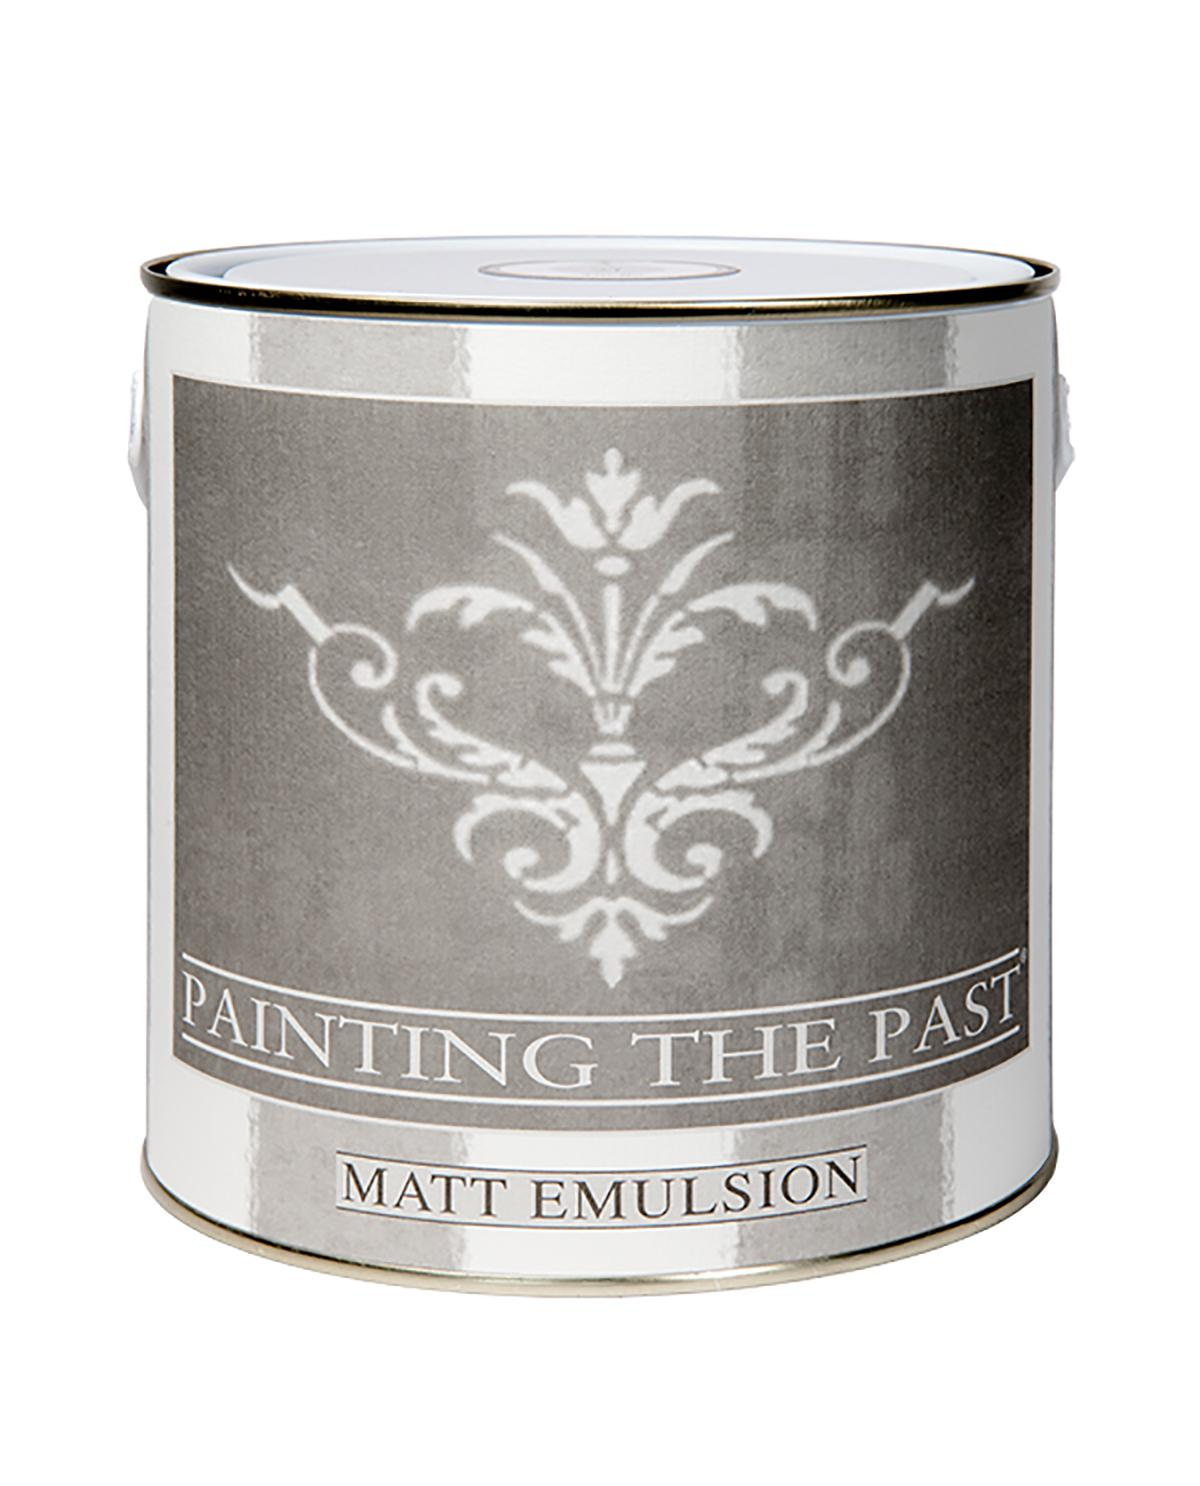 Painting the Past Matt Emulsion